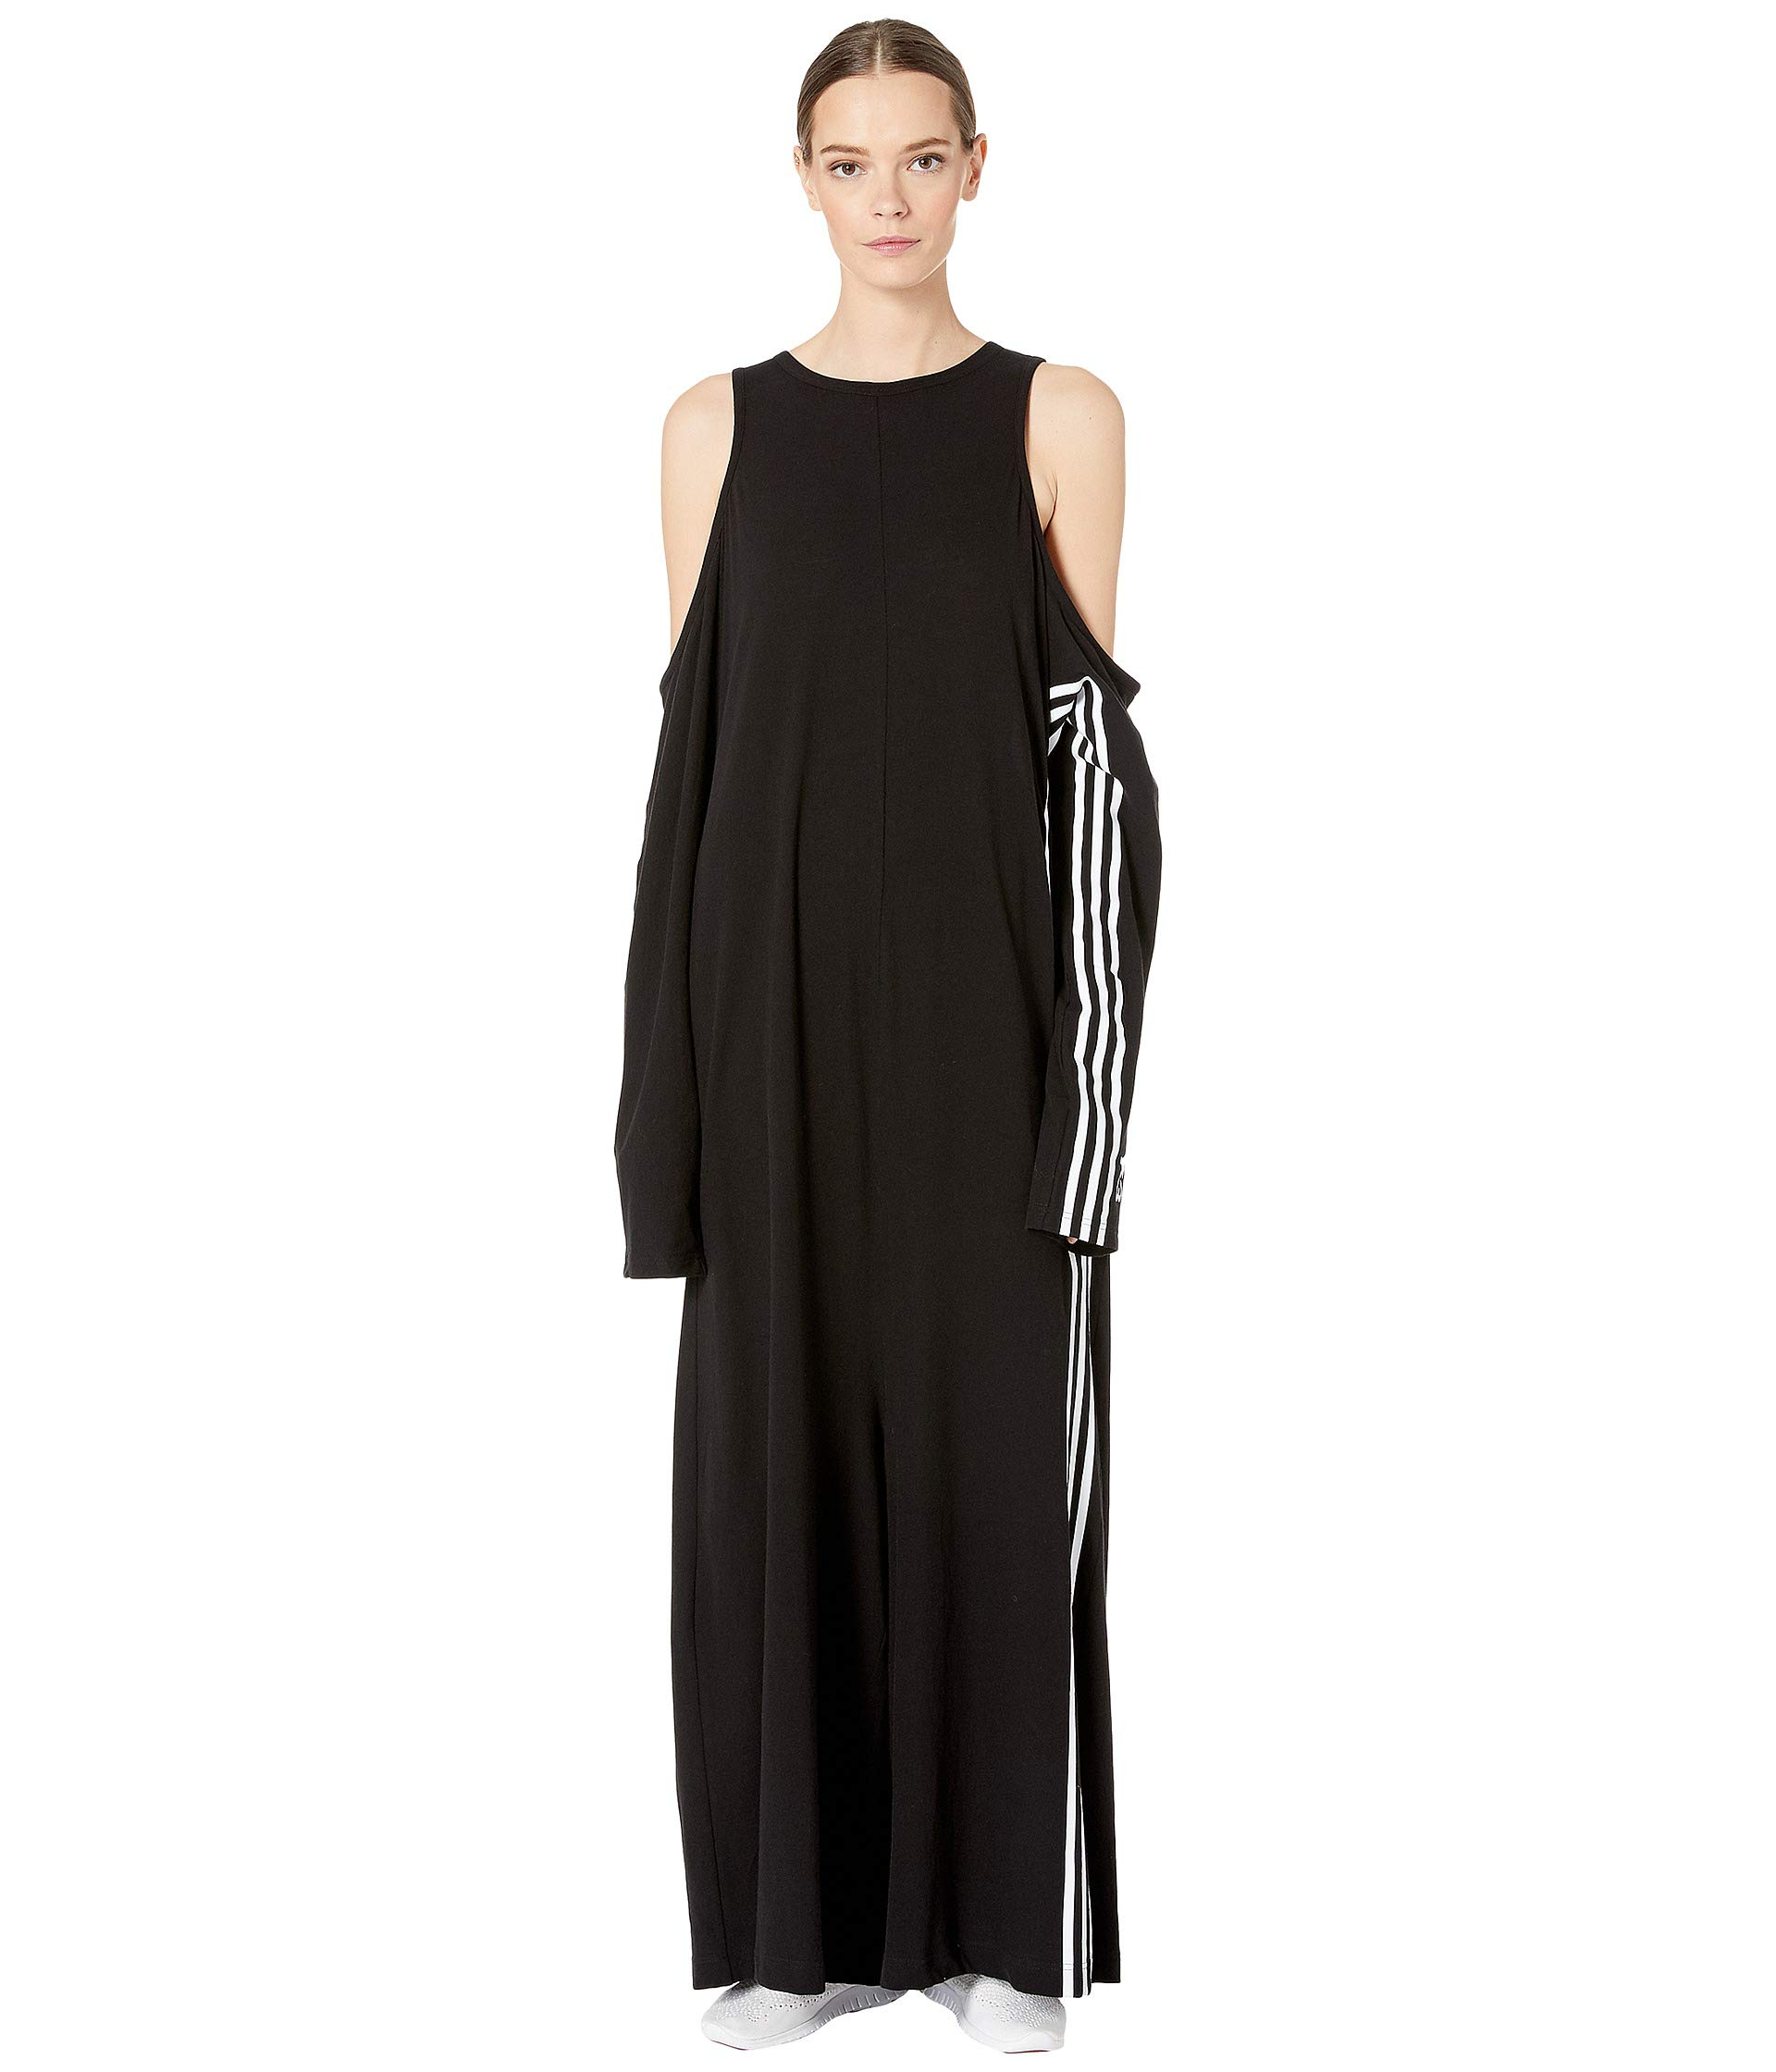 a70369585c Adidas Jumpsuit Womens Amazon